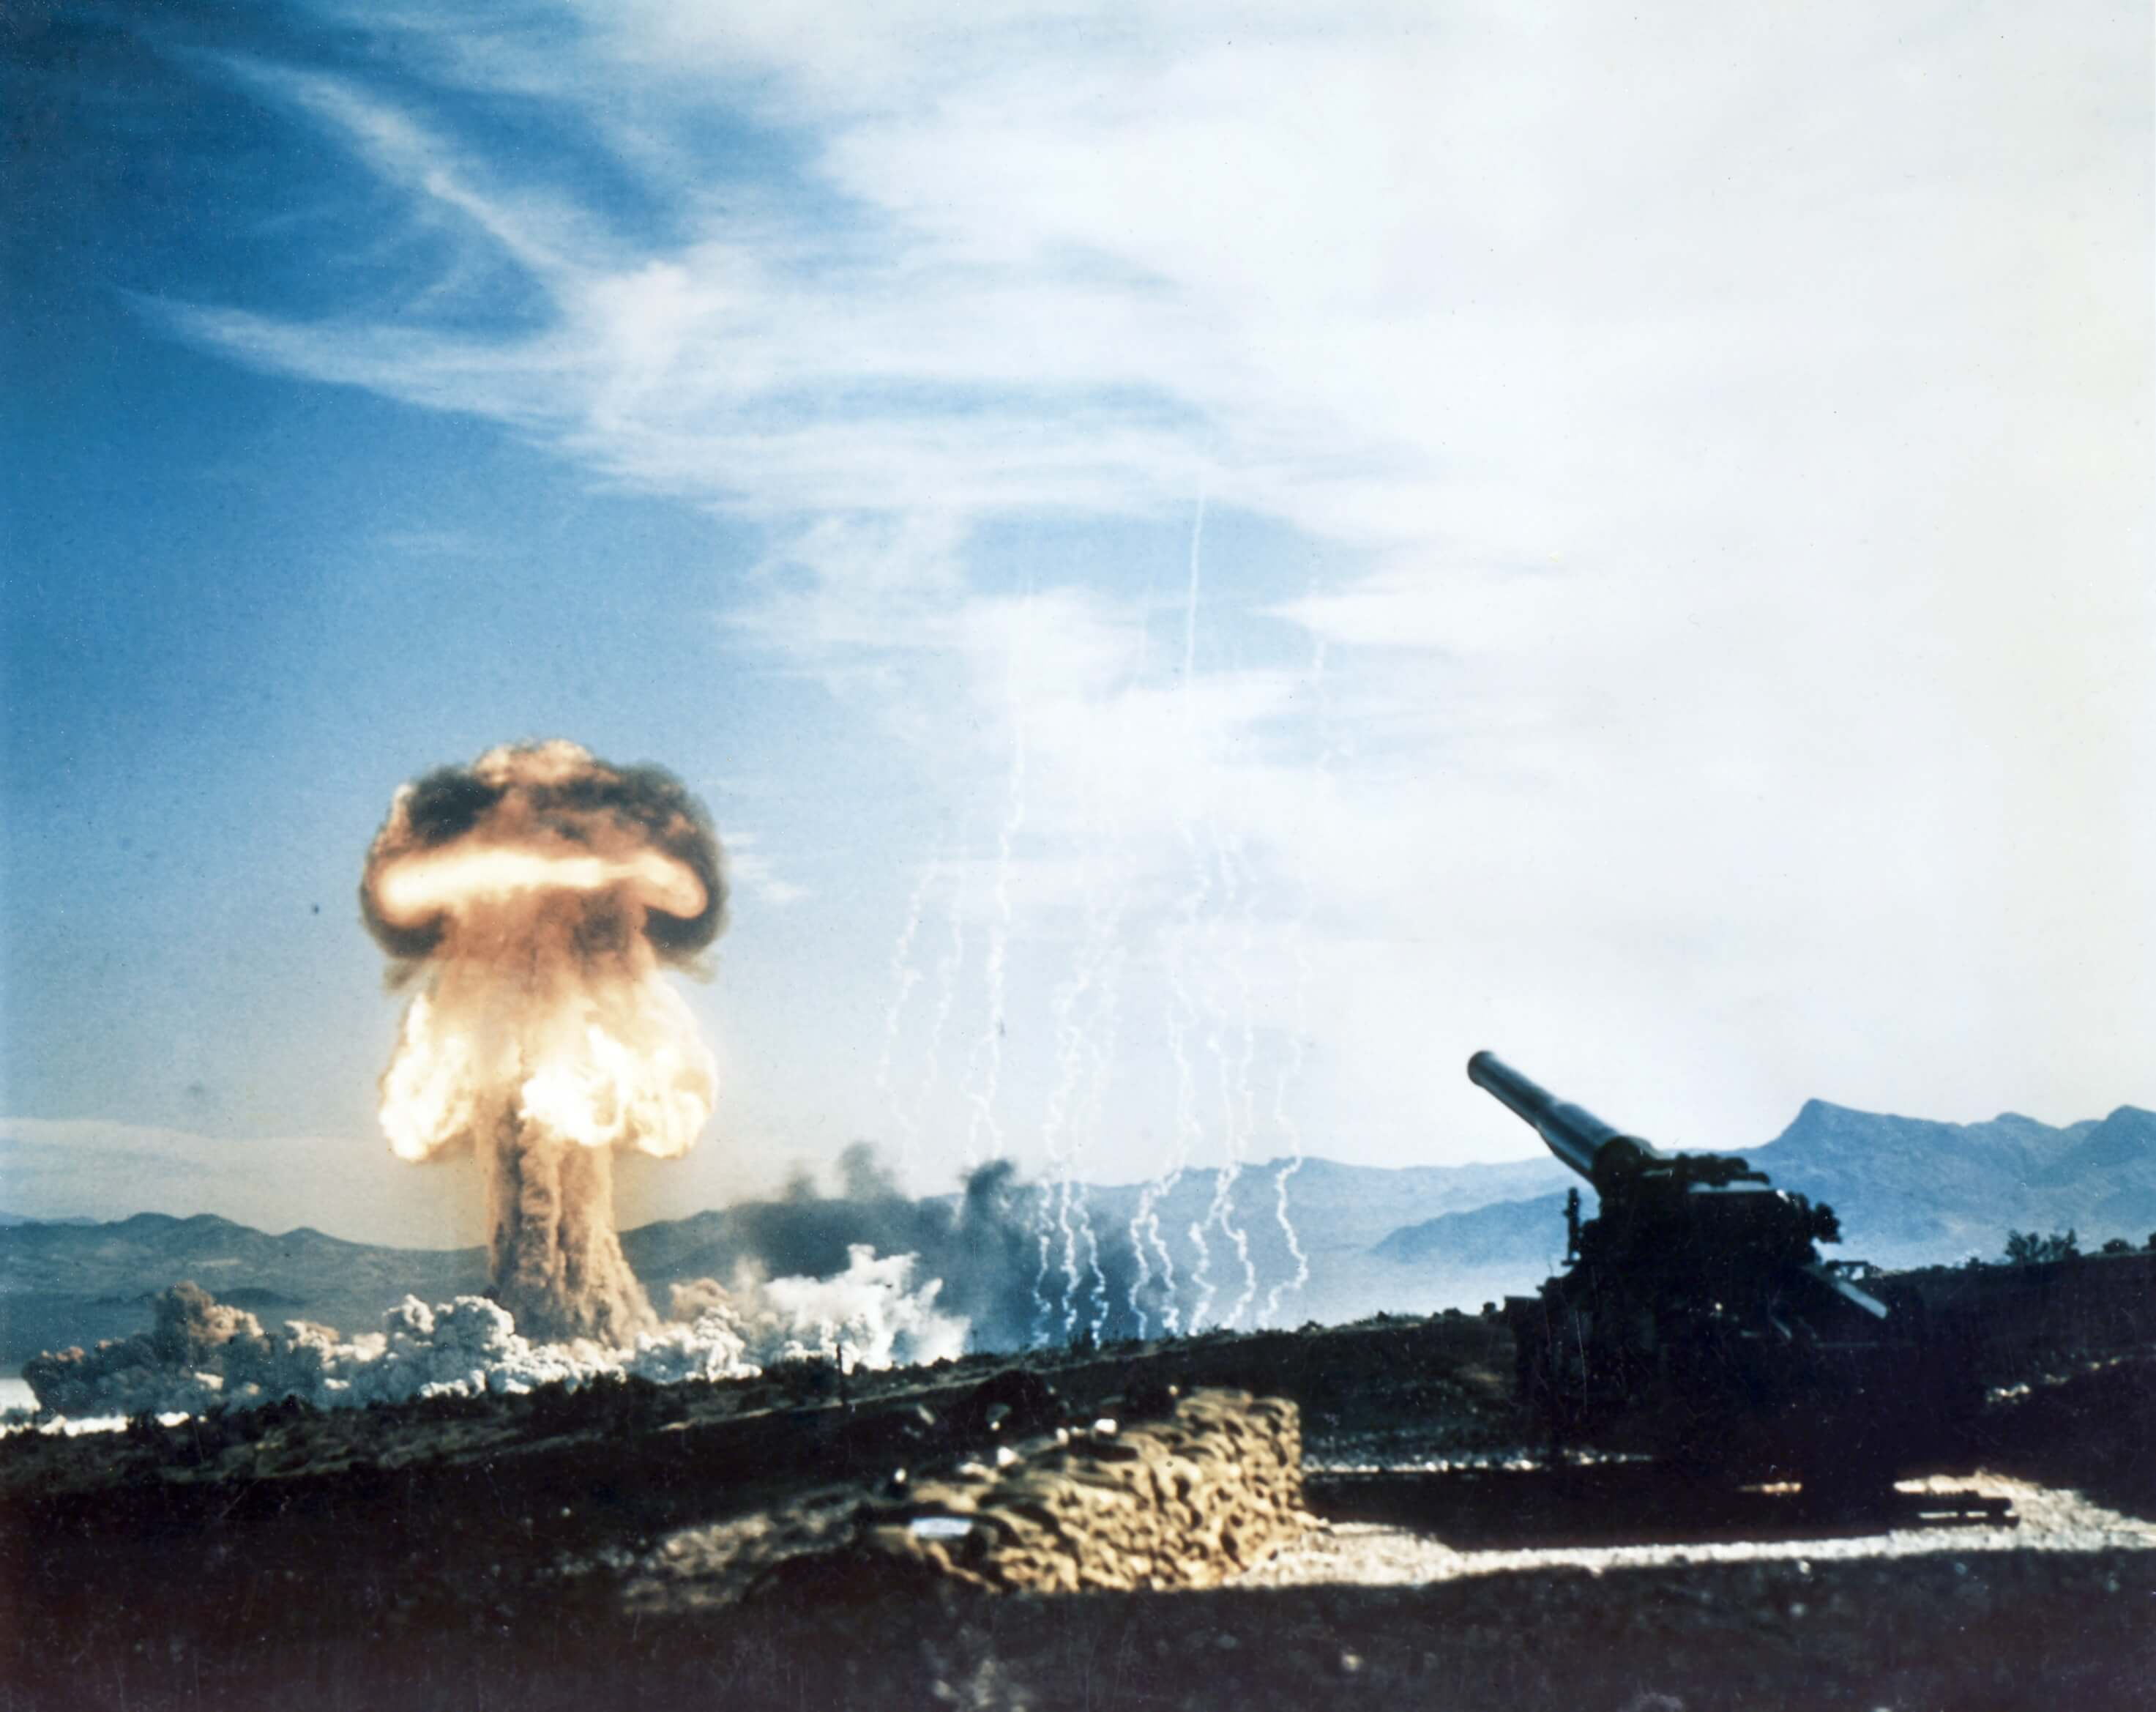 Nuclear artillery test Grable Event in Nevada, 1953. © National Nuclear Security Administration